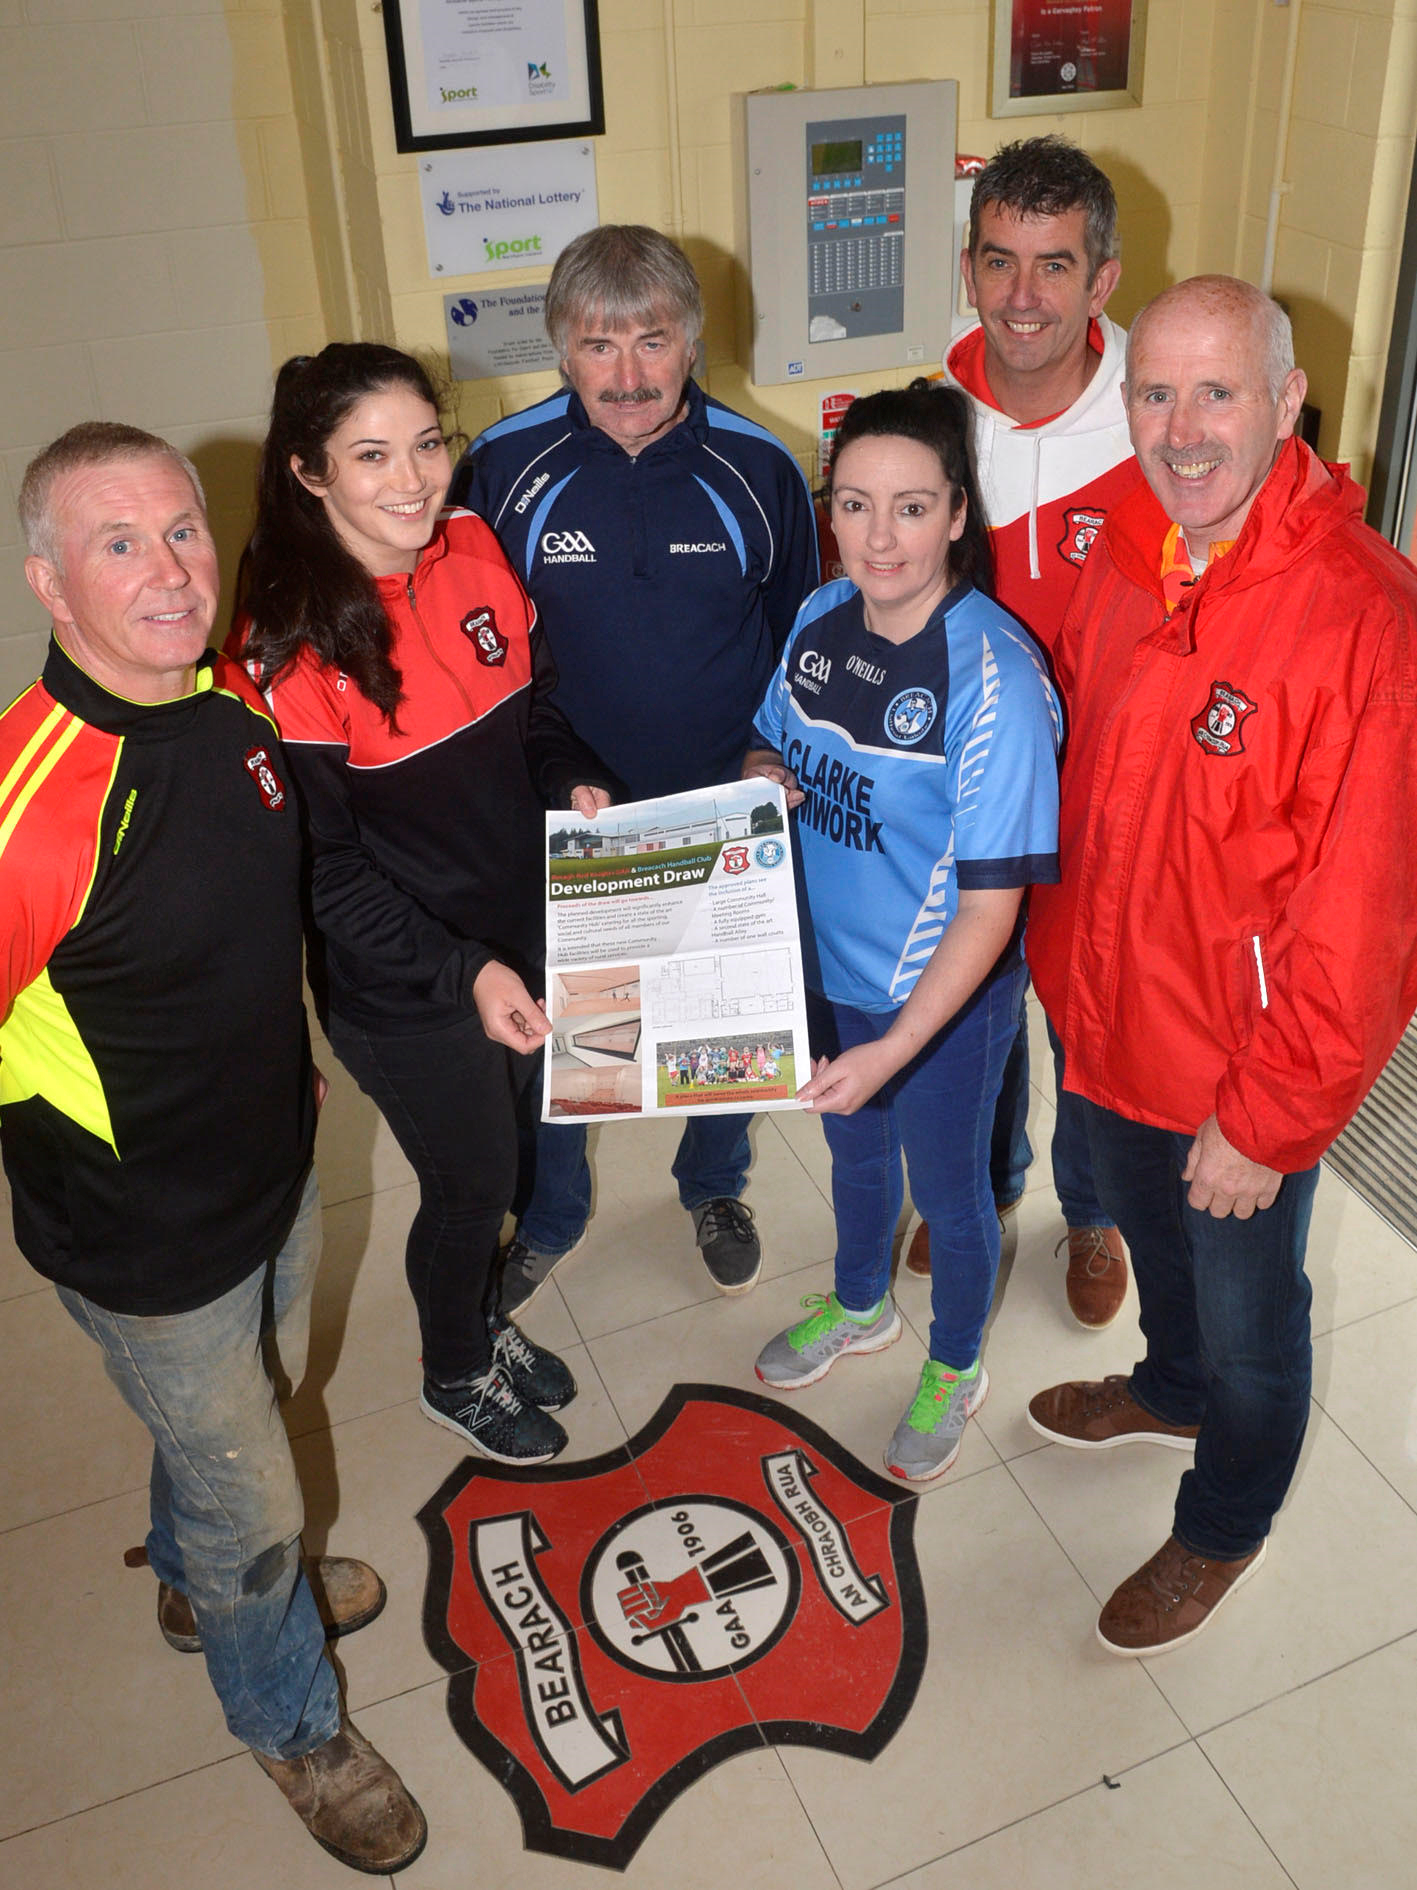 Beragh Red Knights and Breacach Handball Club Development Draw 2017. Club Chairman Seamus Boyle, PRO EIlish Owens, Breacach Handball Club representatives Sean Clarke and Michelle Warren, Committee members Michael McCaughey and Hugh McNamee